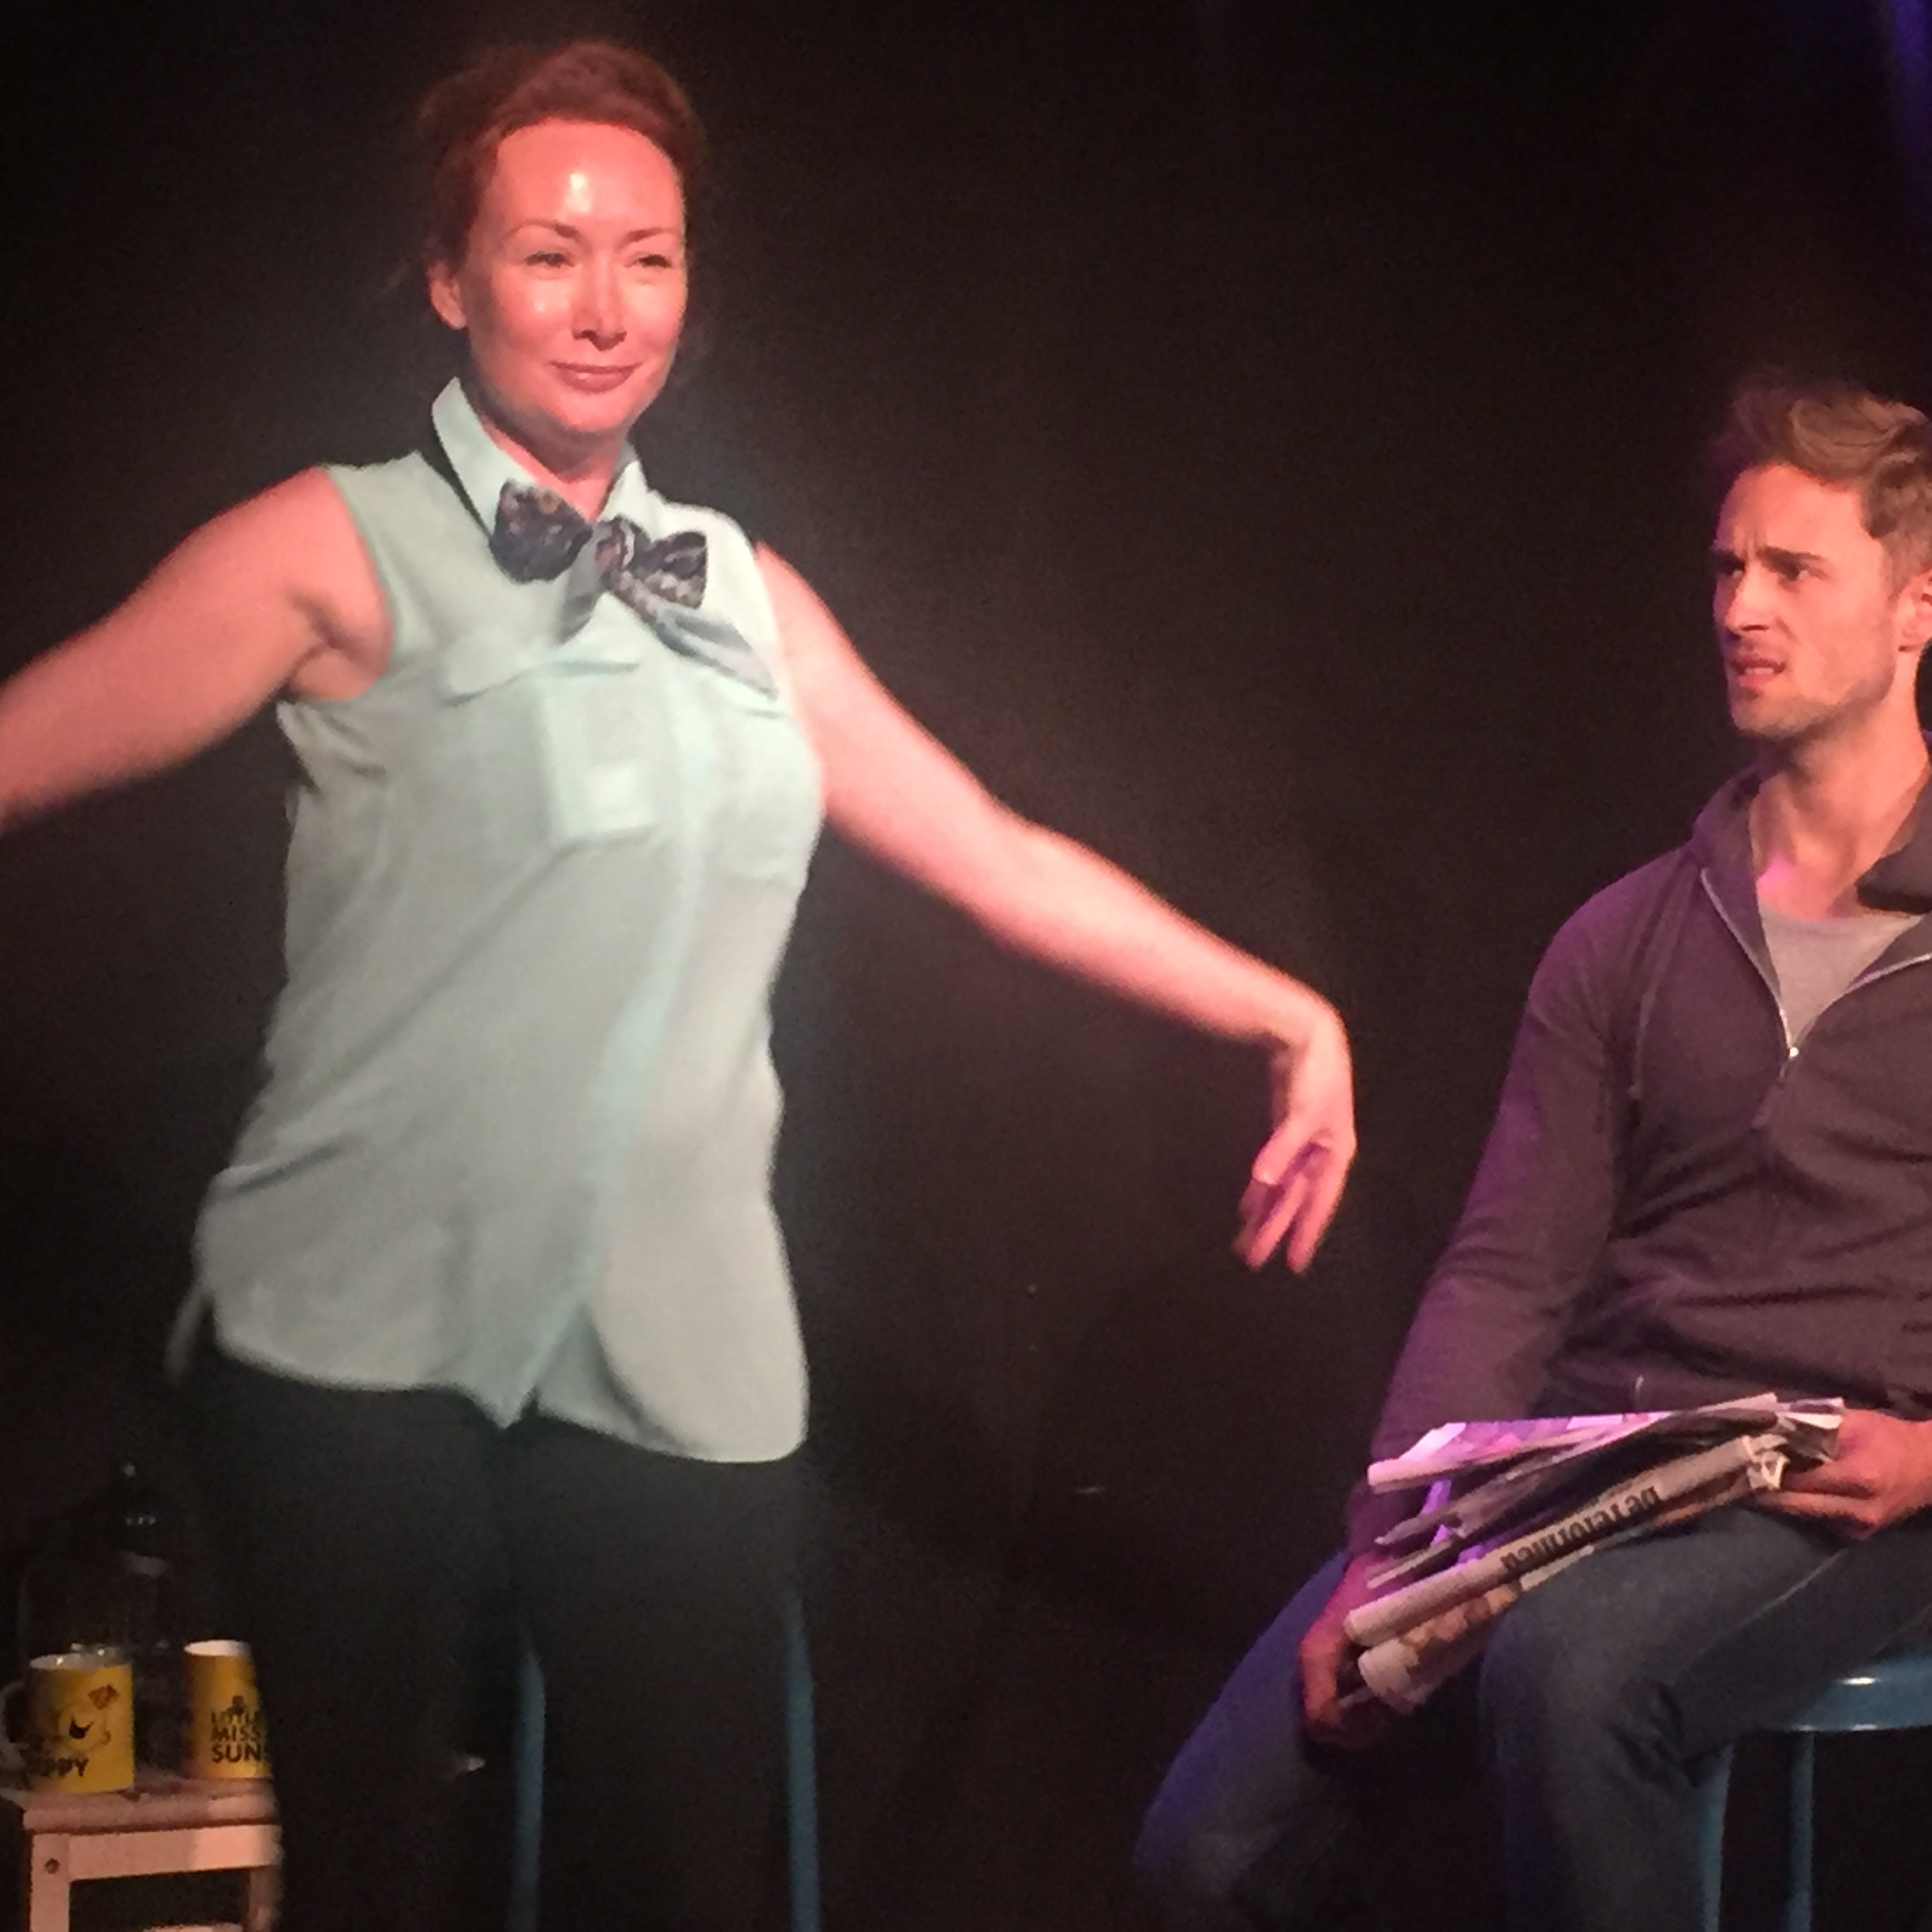 helen rose-hampton and samuel curry in the d-list, edinburgh fringe 2016.